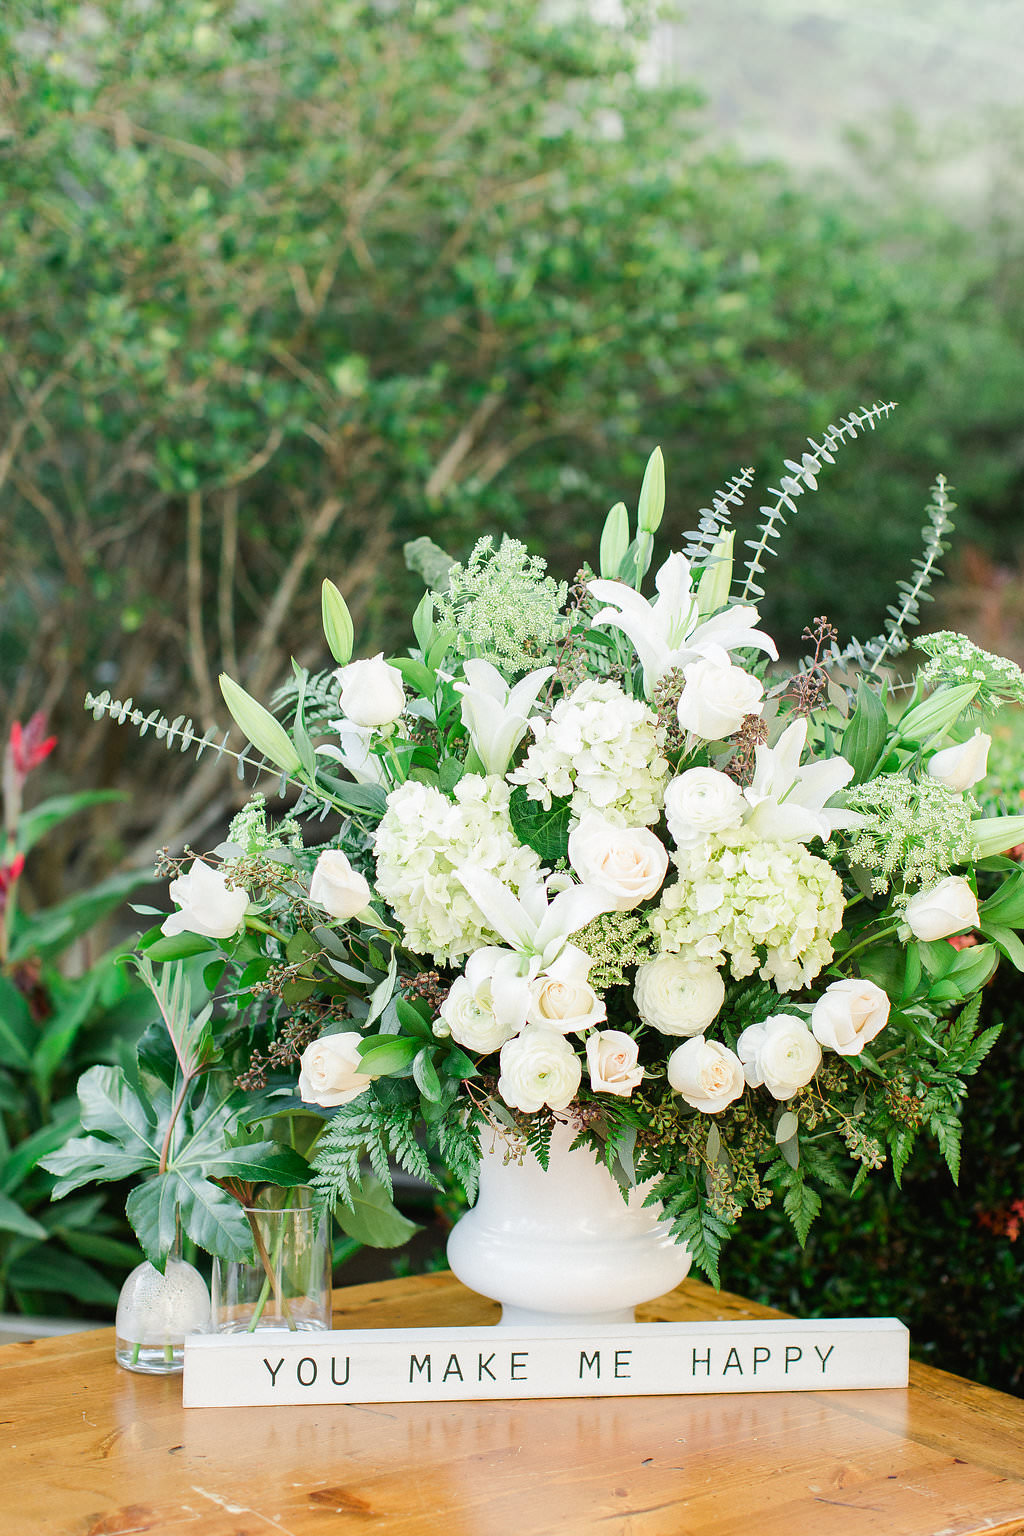 Classic, Organic Garden Floral Wedding Decor, White, Ivory and Greenery Floral Bouquet in White Vase, White Wooden Quote Sign